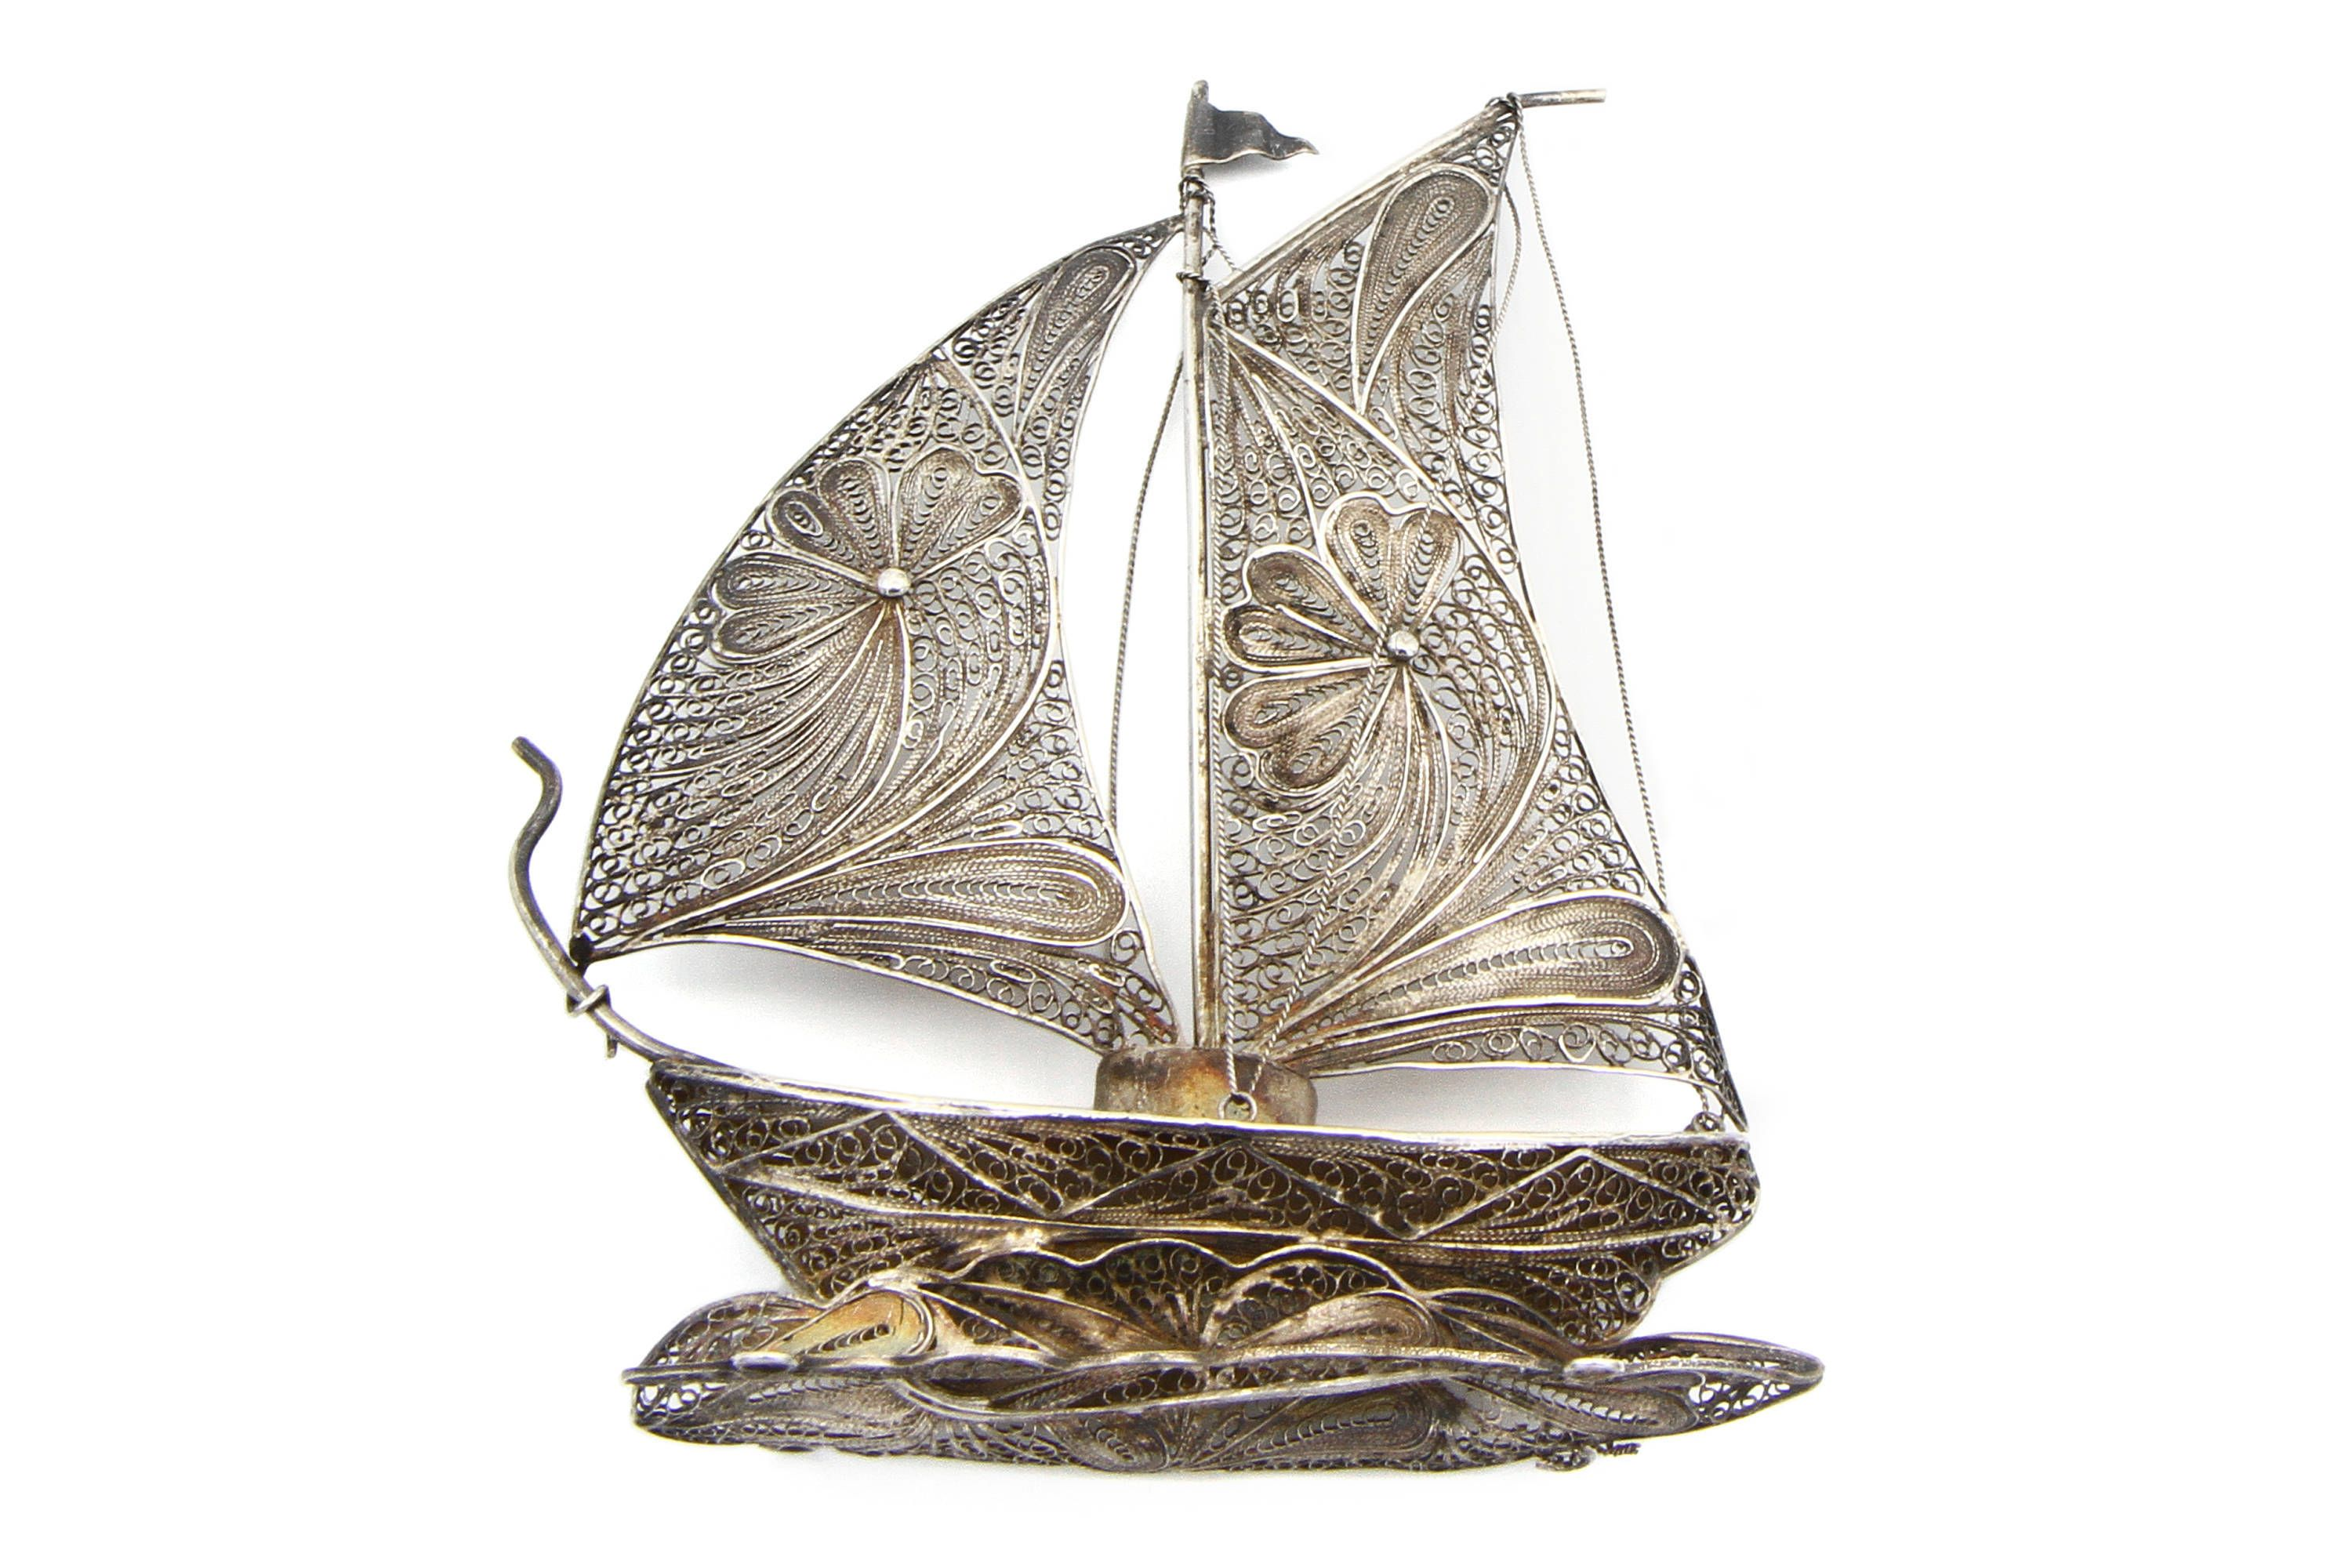 Silver Filigree Ship Wire Worked Sailing Boat Handmade Ship Boat Caravel Model Antique 1940s Nautical Decor An Silver Filigree Filigree Design Silver Work